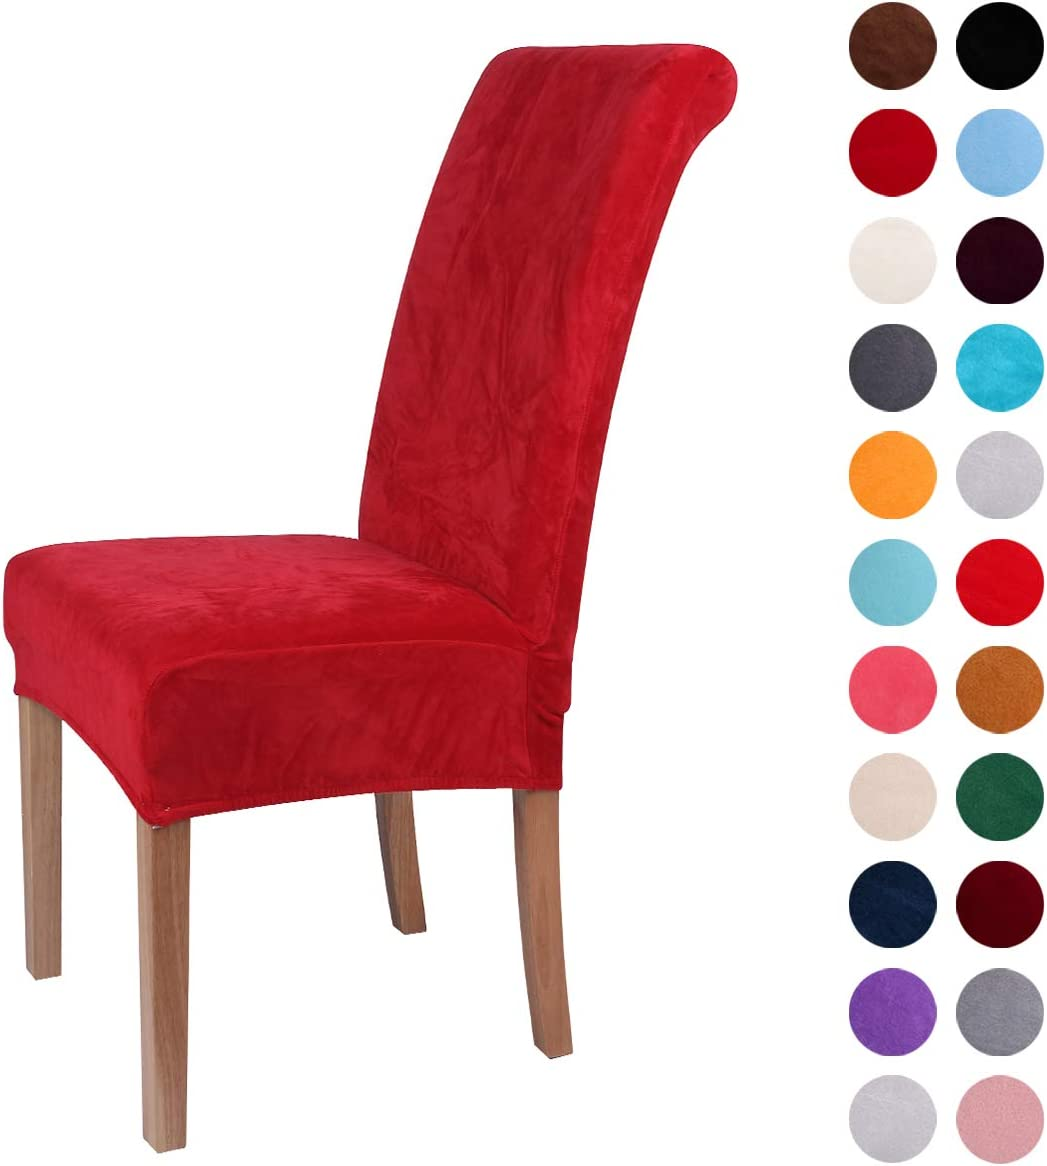 Colorxy Velvet Spandex Fabric Stretch Dining Room Chair Slipcovers Home Decor Set of 6, Red